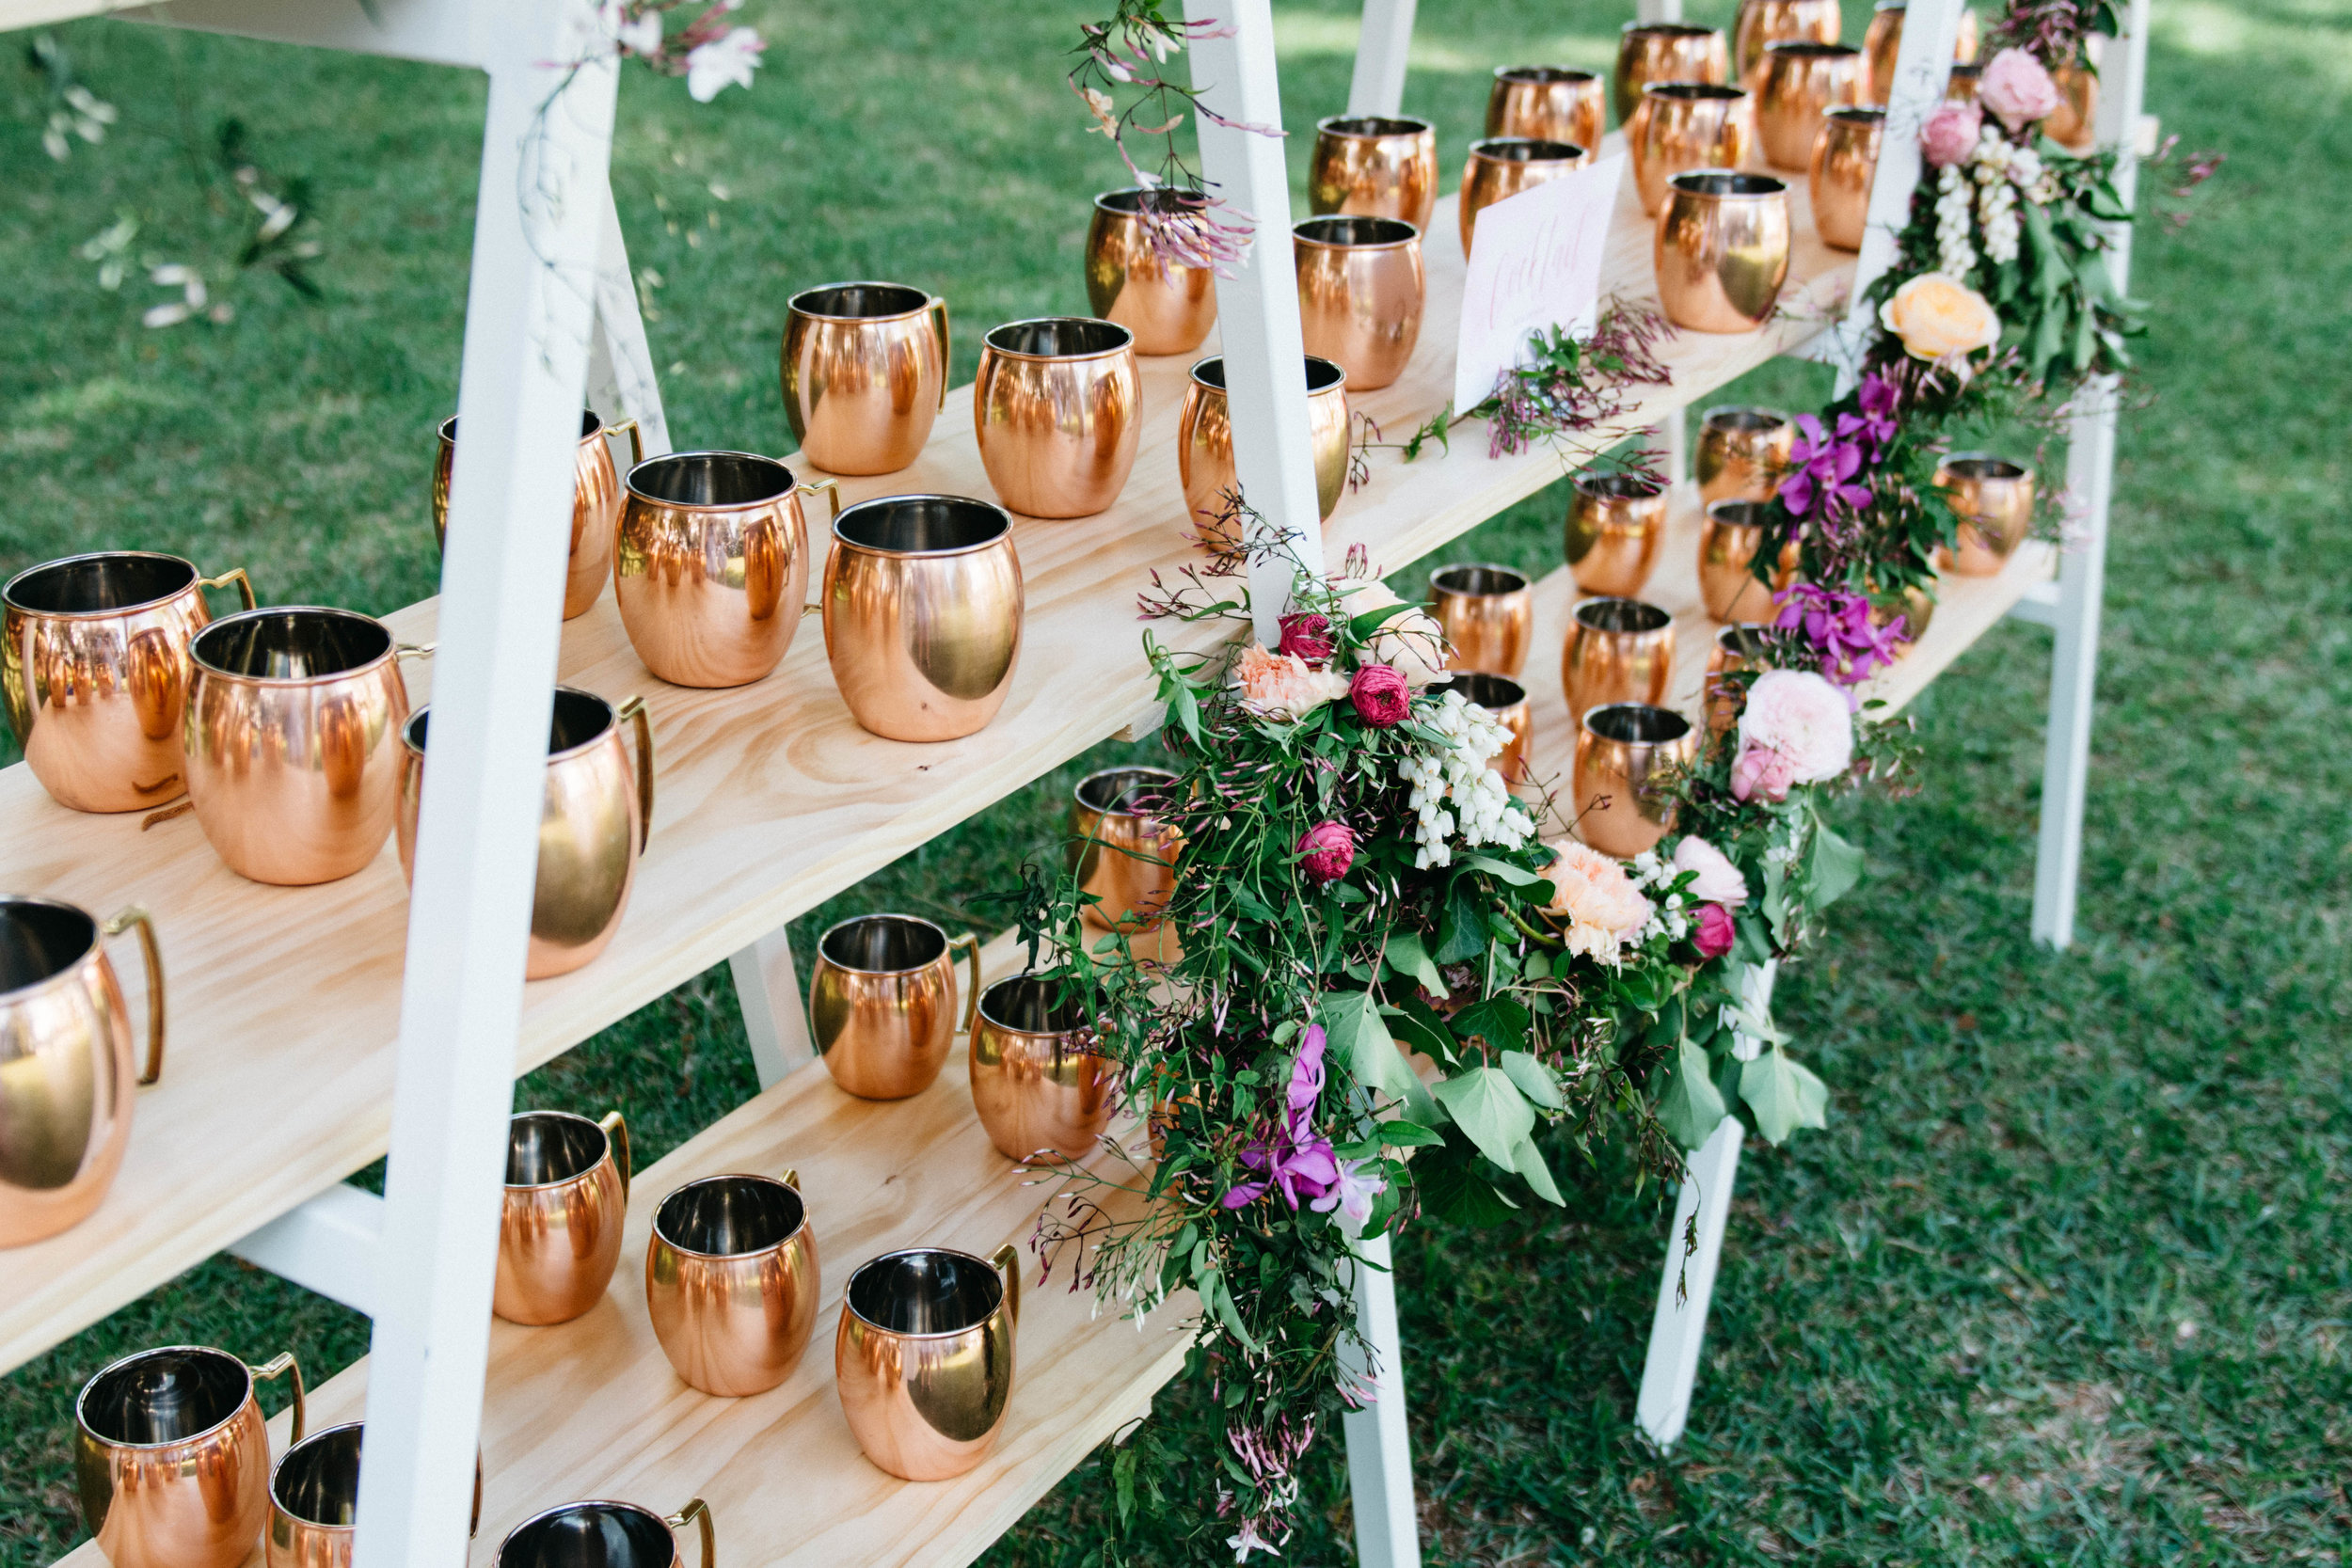 5 creative backdrop ideas for your wedding, with Hampton Event Hire